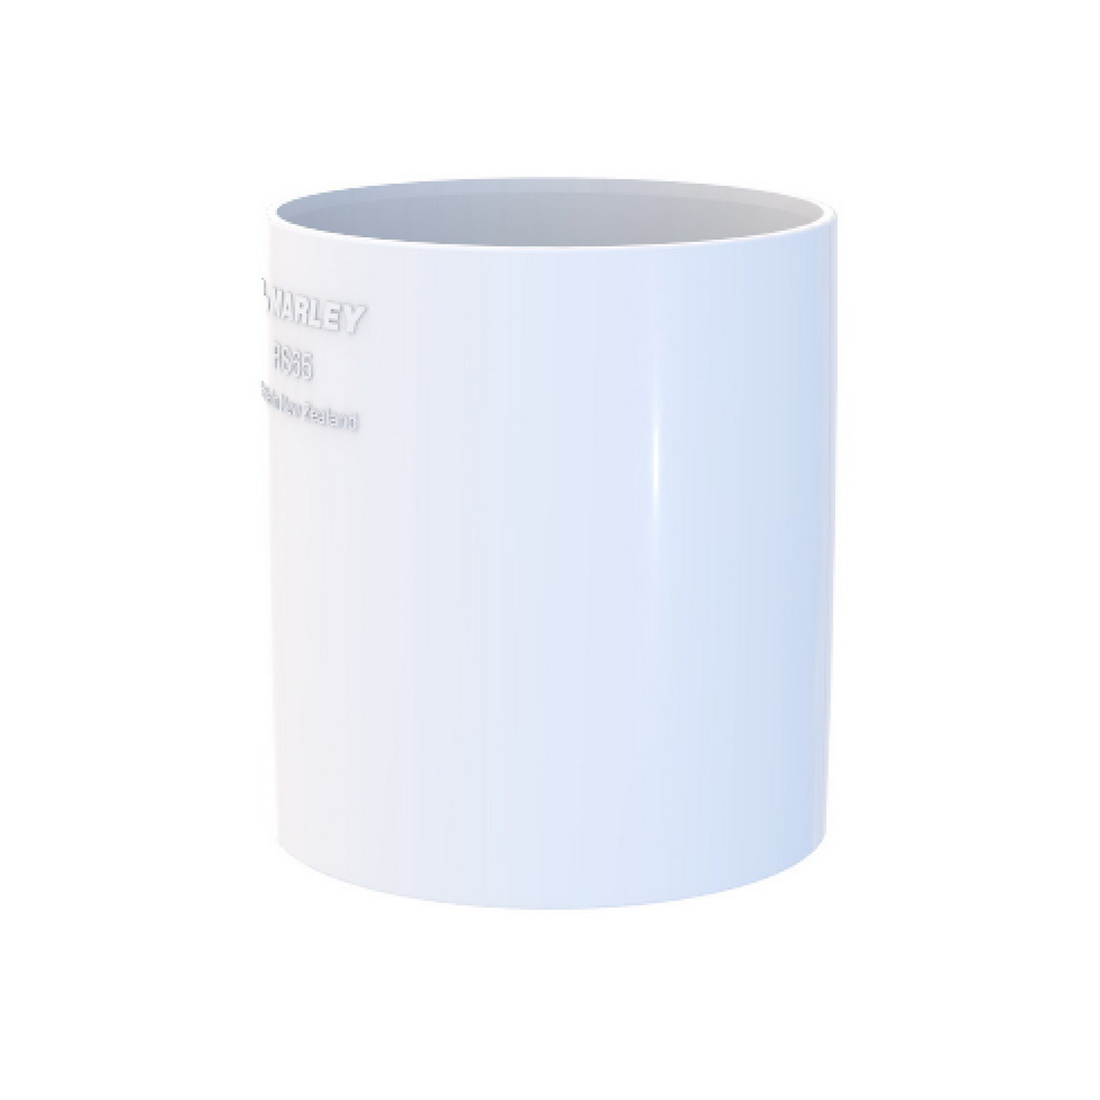 Marley Round Jointing Socket 65 mm Unplasticised PVC RS65